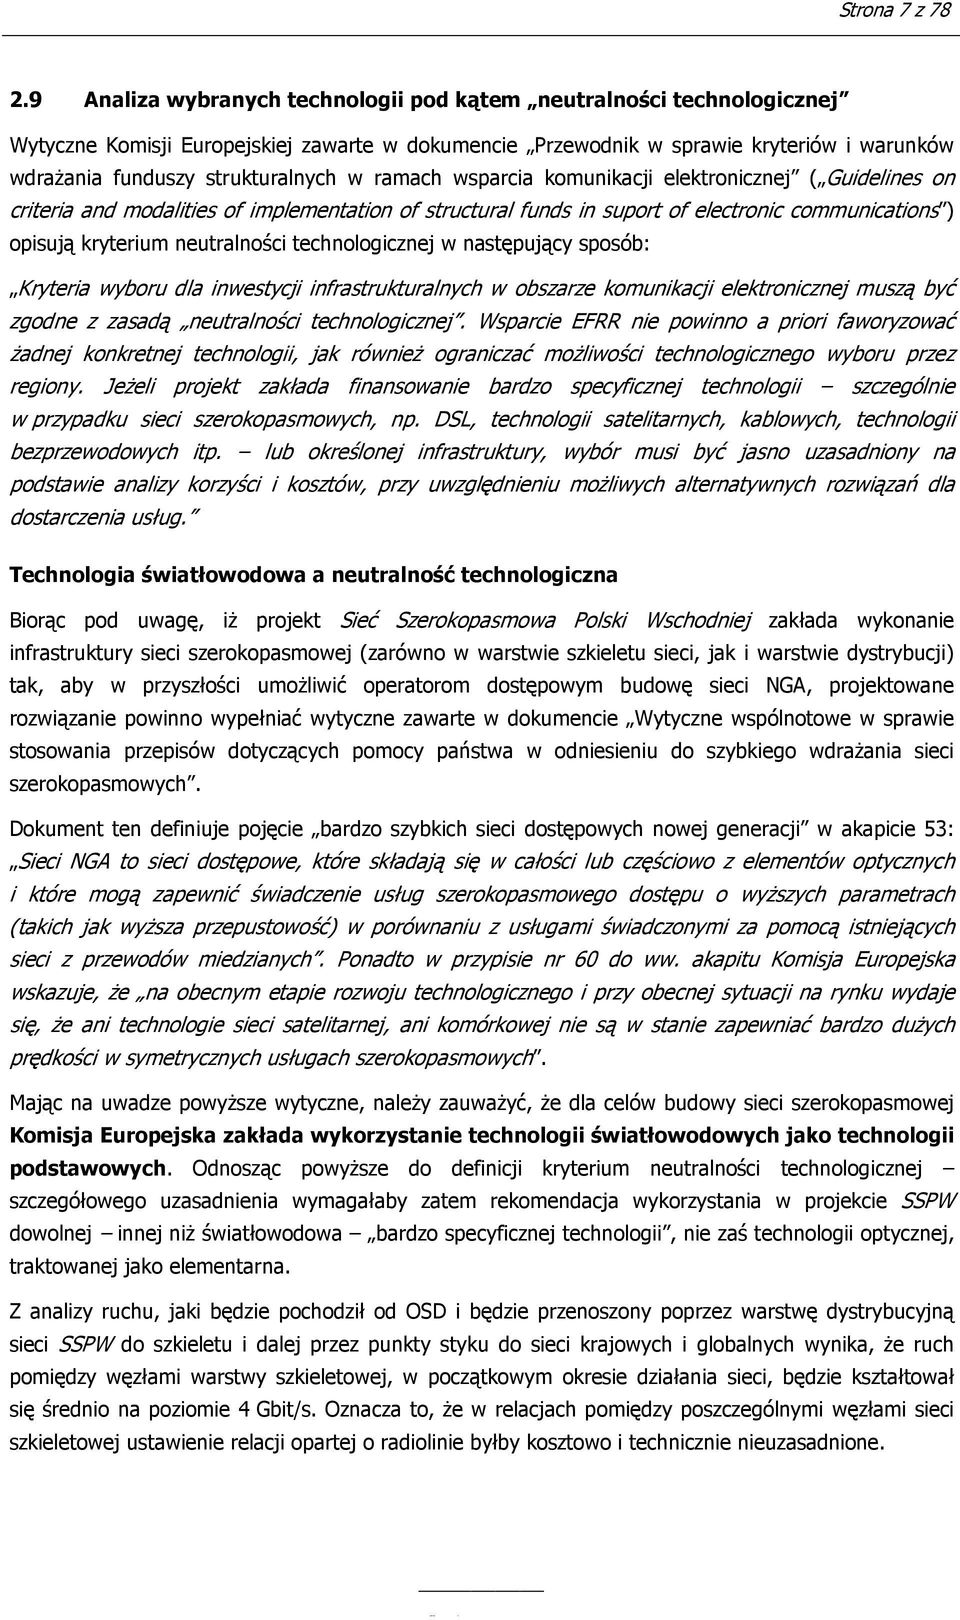 ramach wsparcia komunikacji elektronicznej ( Guidelines on criteria and modalities of implementation of structural funds in suport of electronic communications ) opisują kryterium neutralności